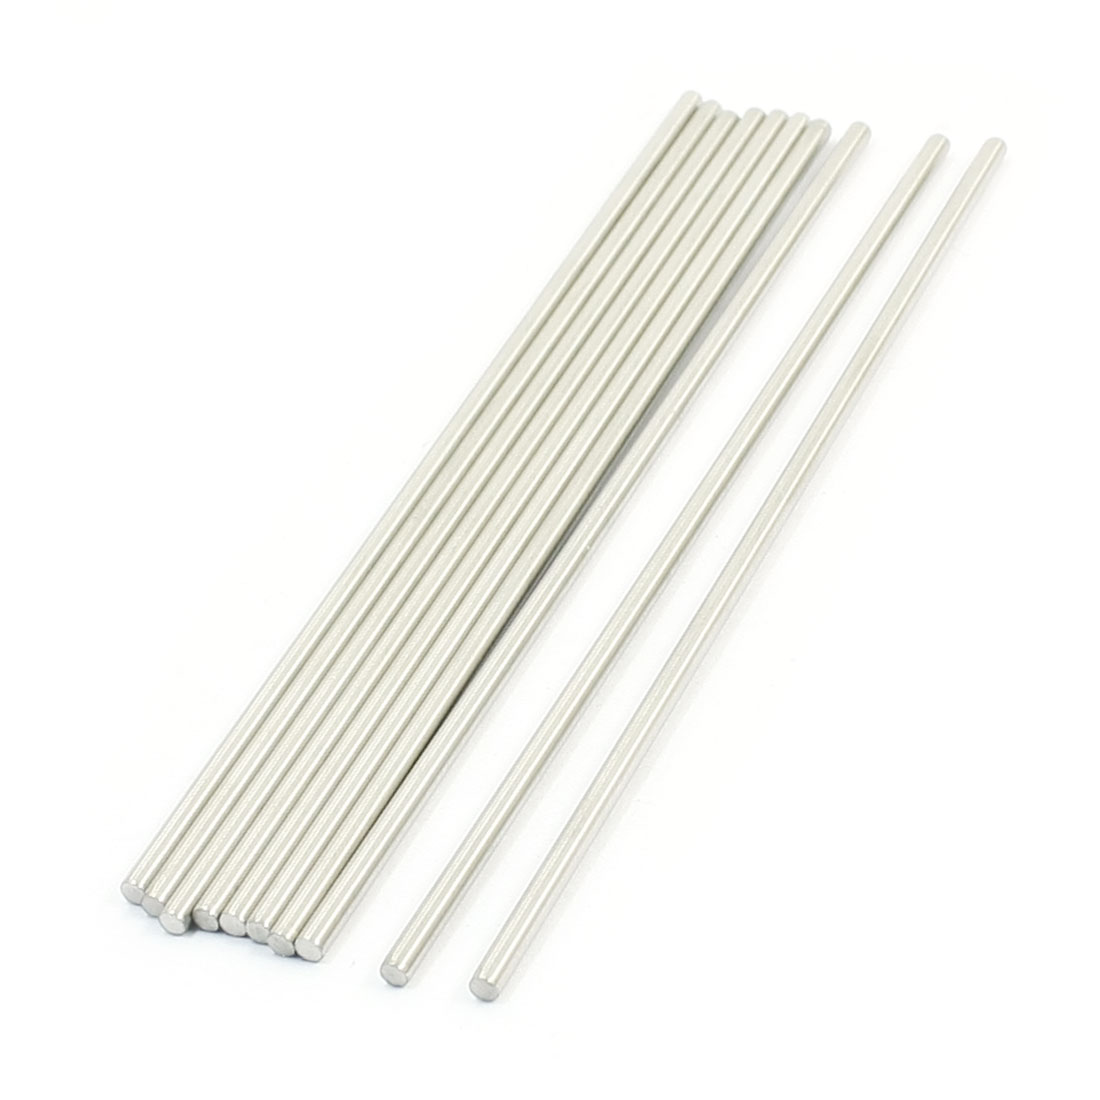 10PCS RC Aircraft Parts Stainless Steel Straight Bar Shaft 140mm x 2.5mm